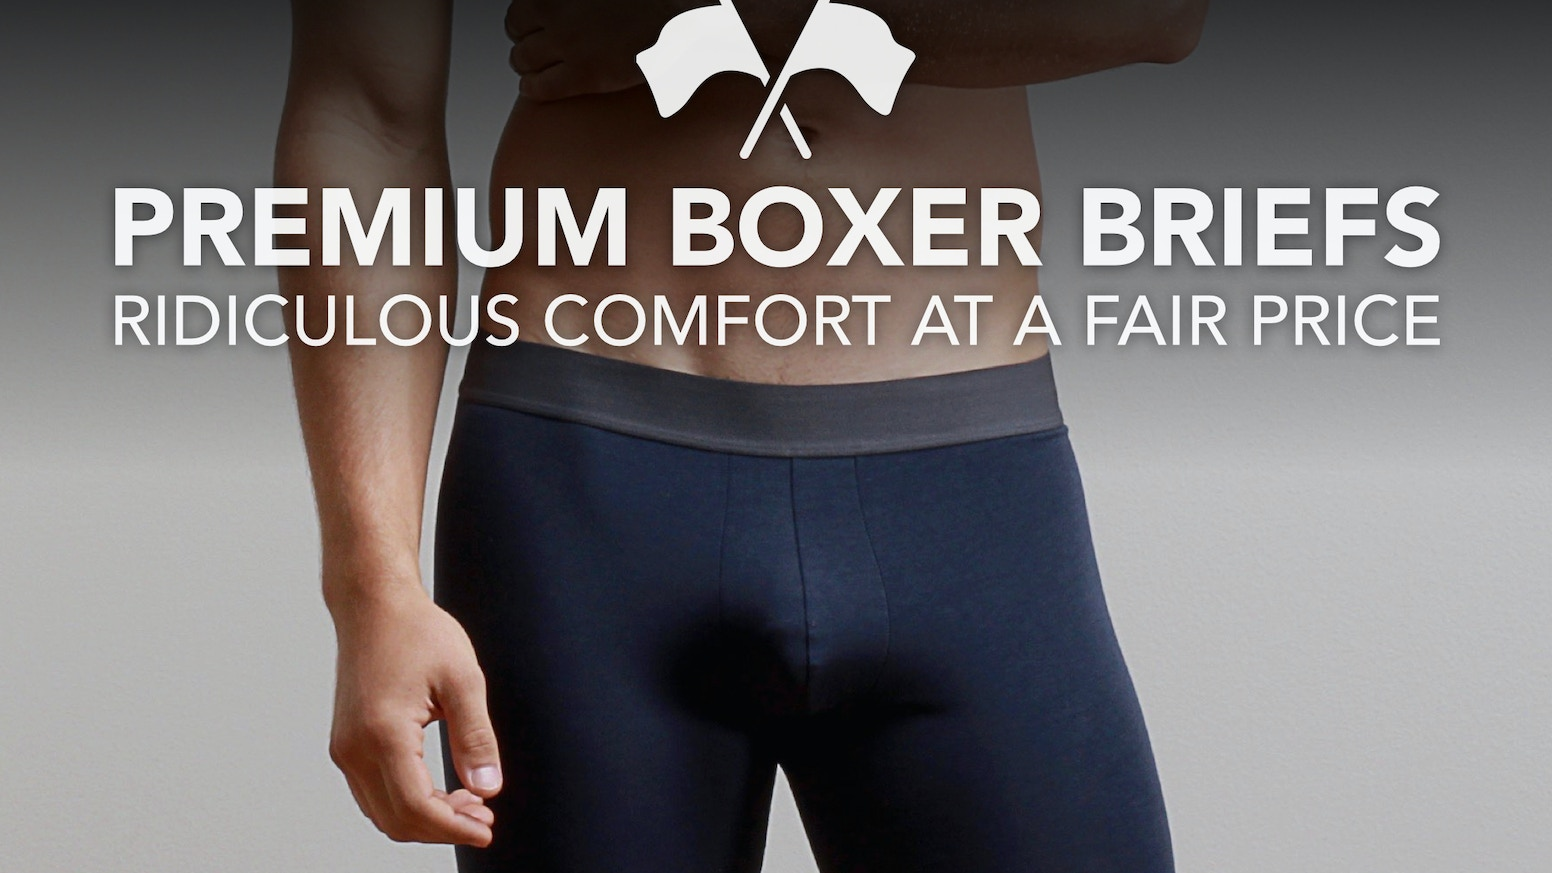 The best fitting boxer briefs, tees and sweats also have a consscience.